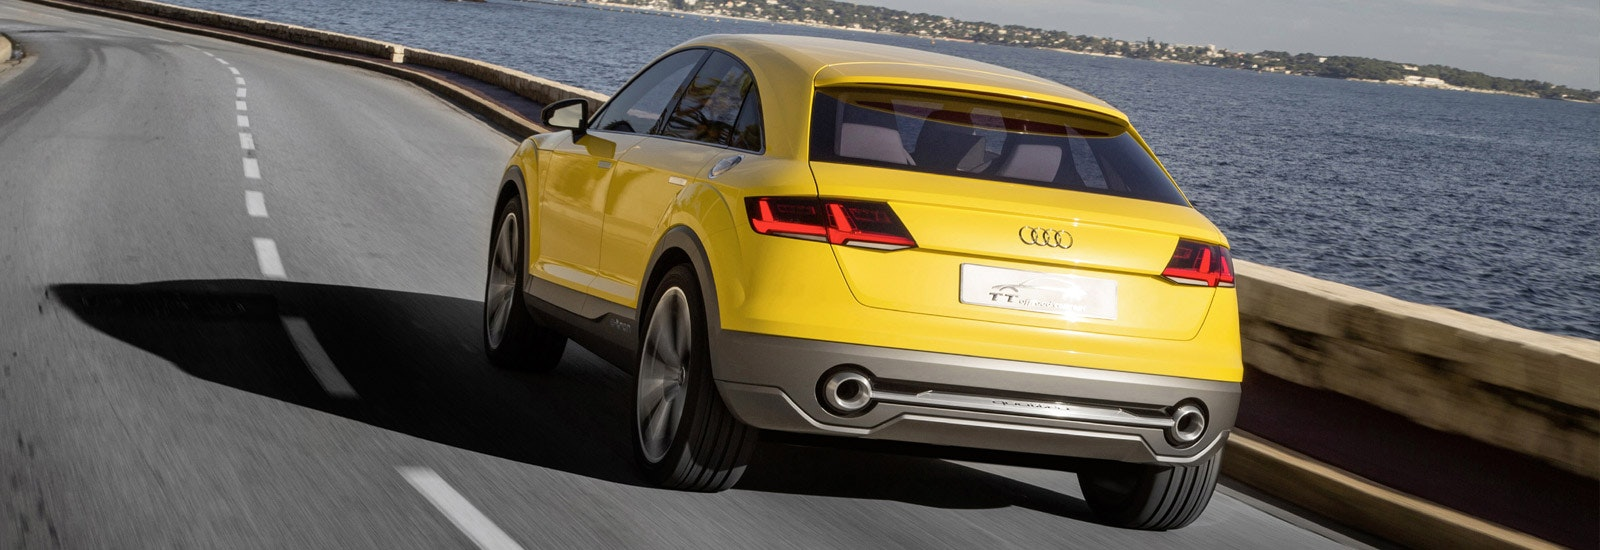 2019 Audi Q4 SUV coupe price, specs and release date   carwow